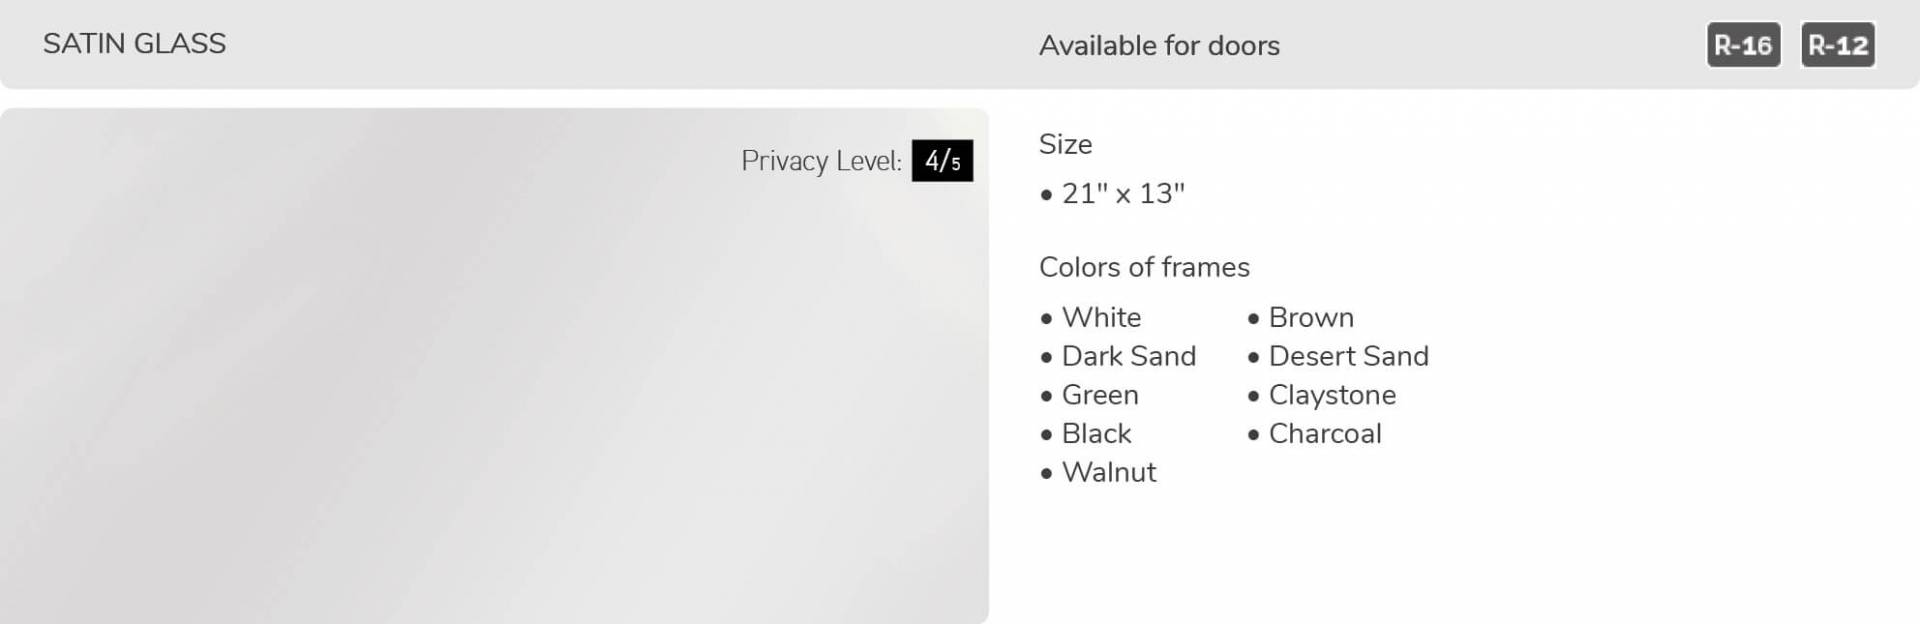 Satin glass, 21' x 13', available for door R-16 and R-12